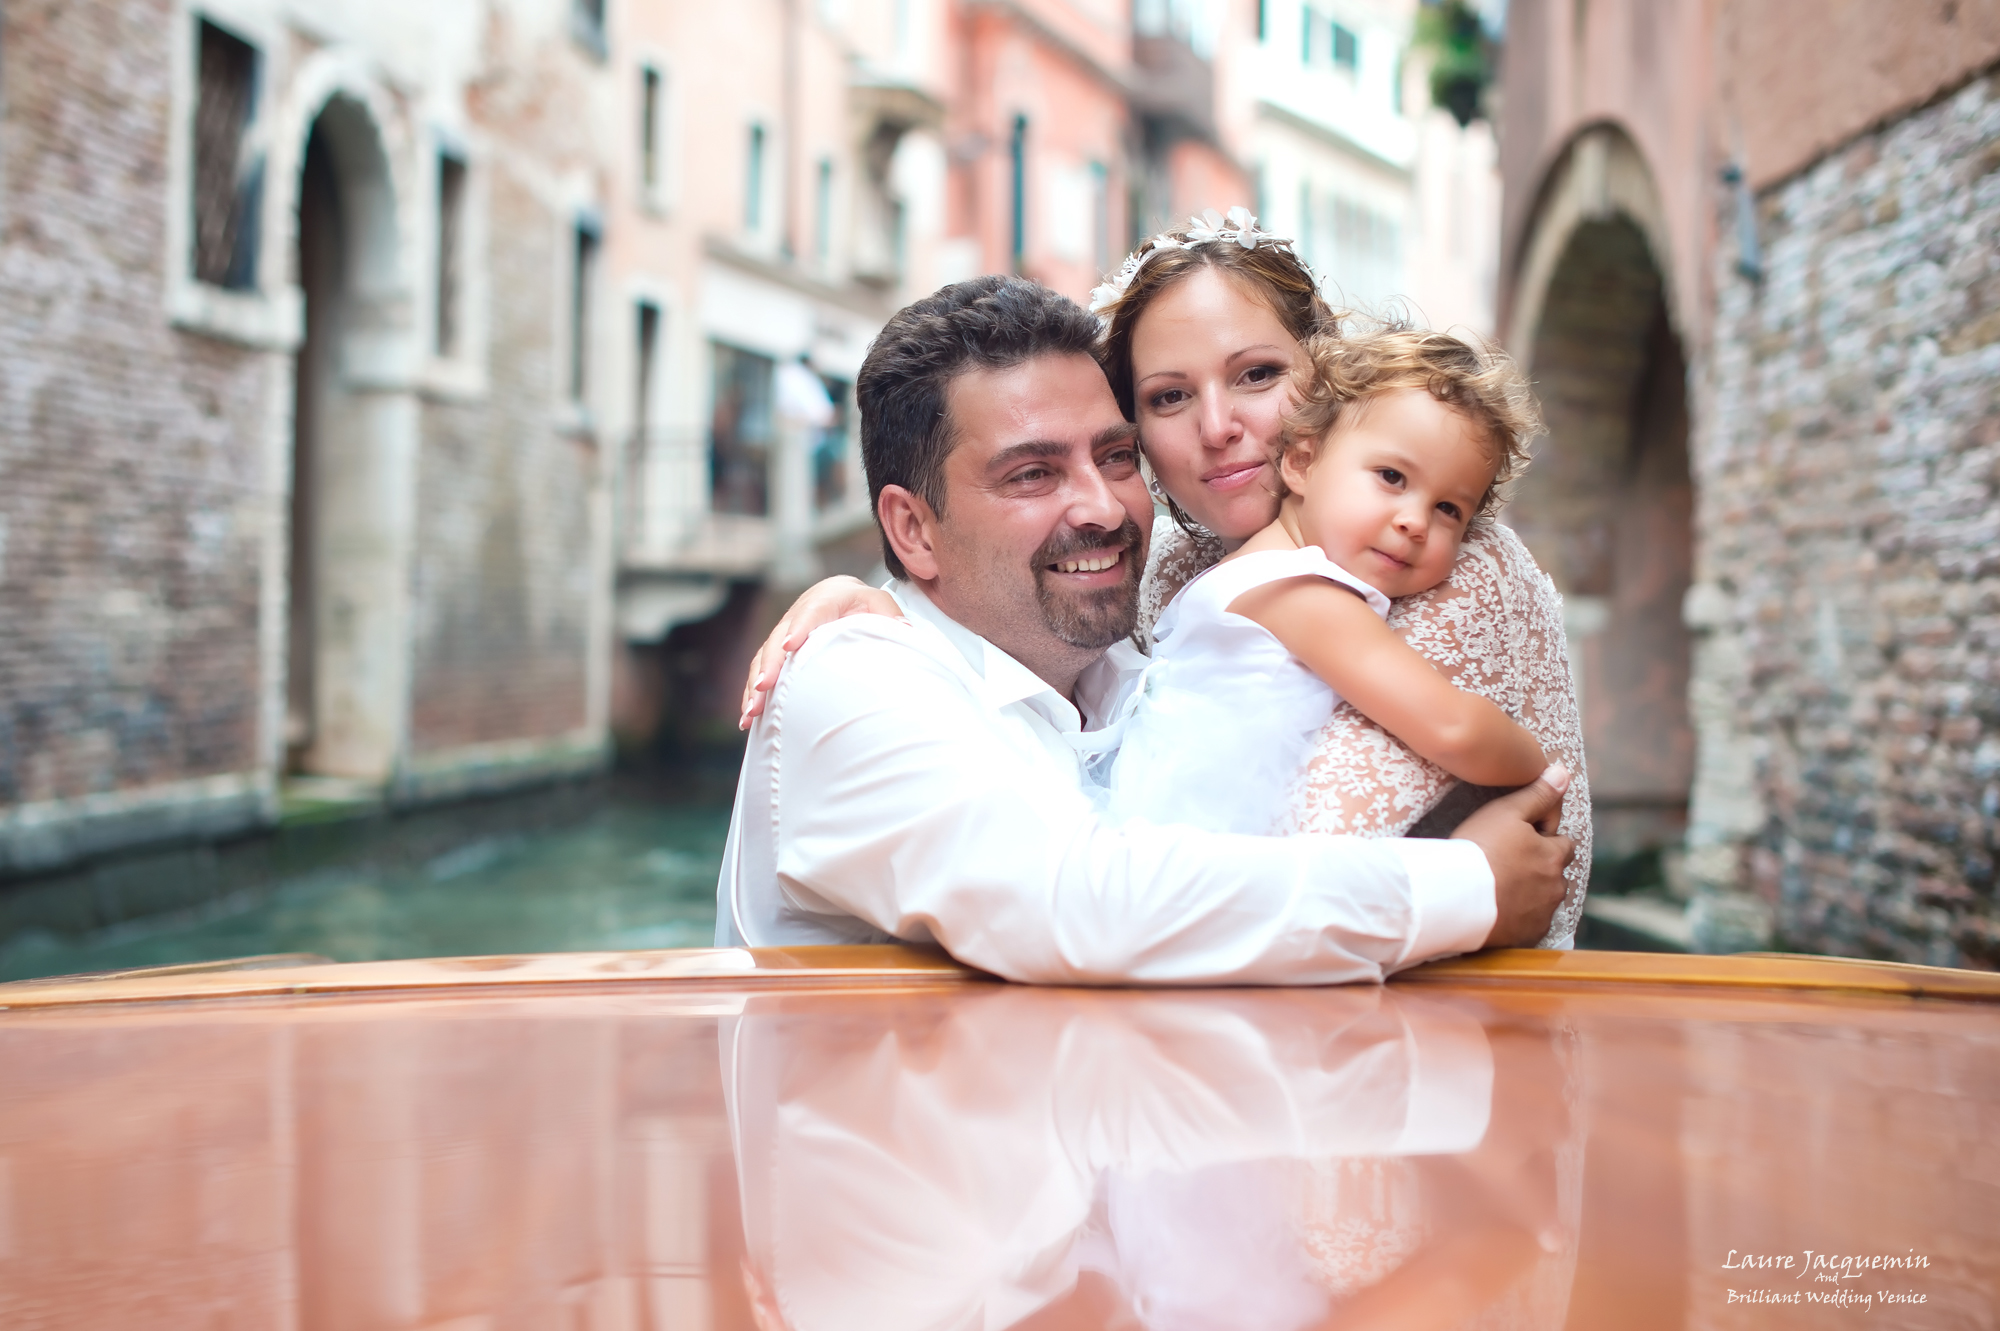 venice photography symbolique wedding palace palazzo photogapher engagment LAURE JACQUEMIN  (51)